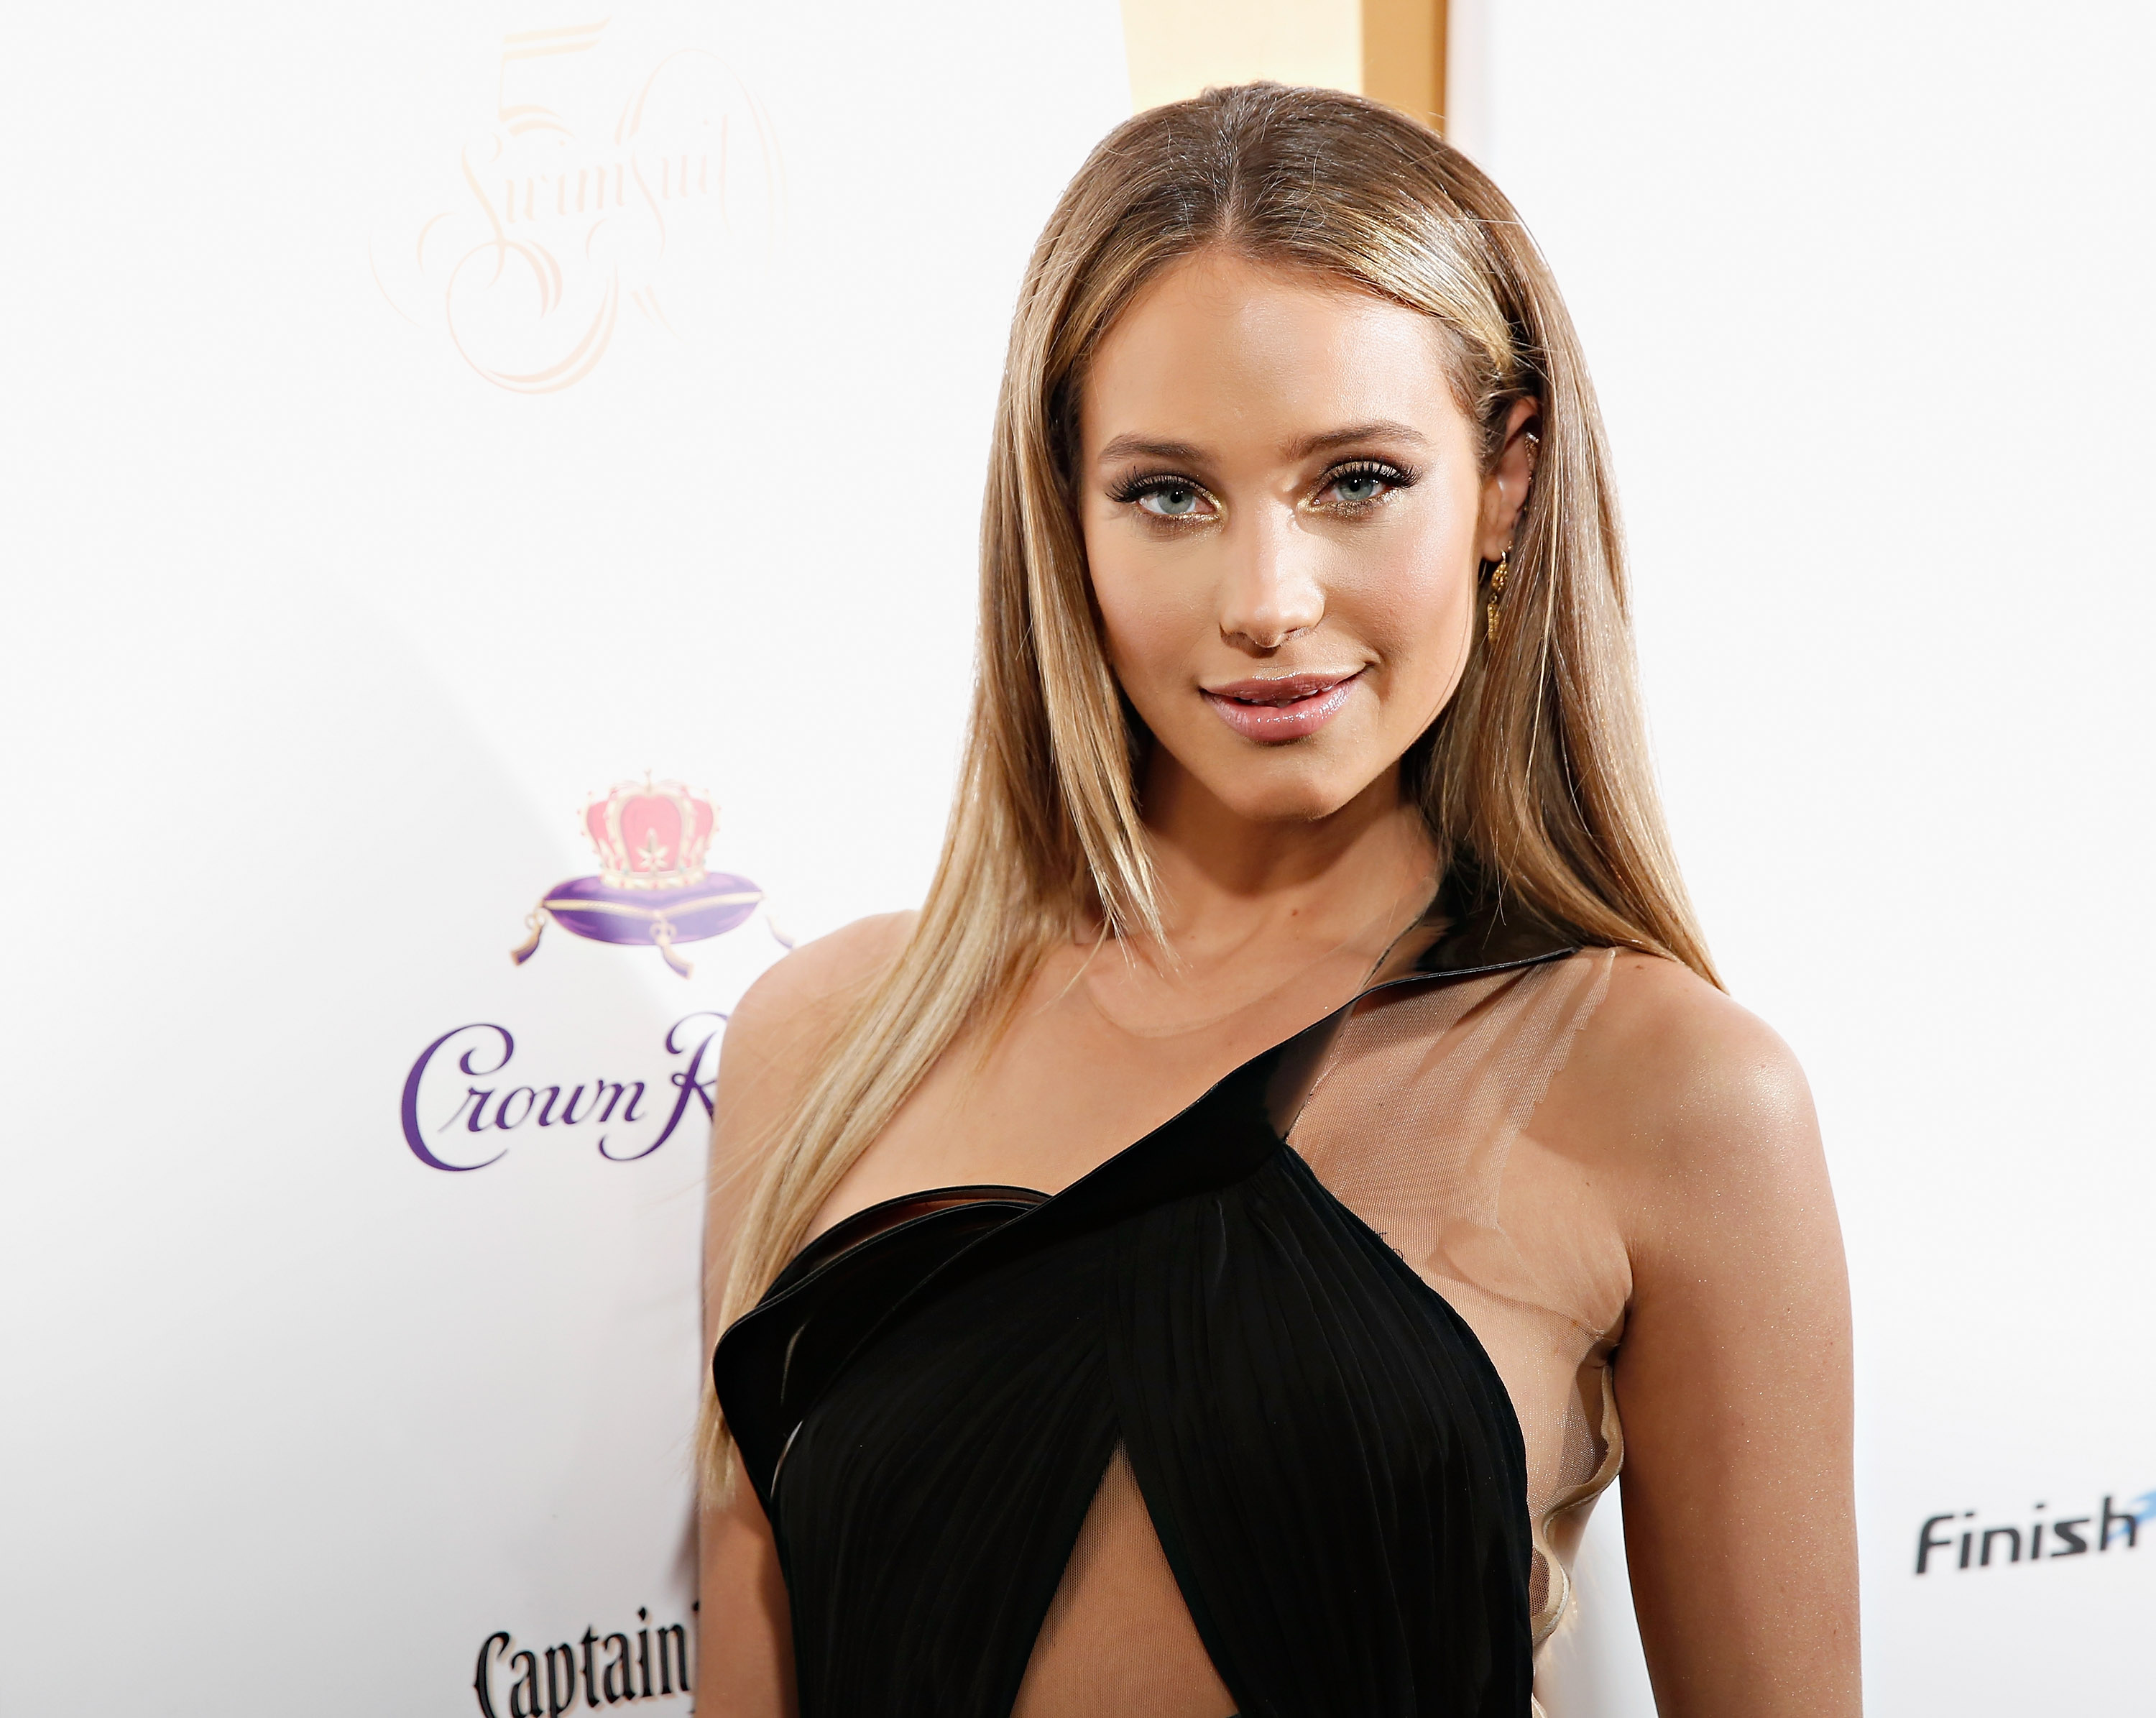 sports illustrated cover model hannah davis is obsessed with her